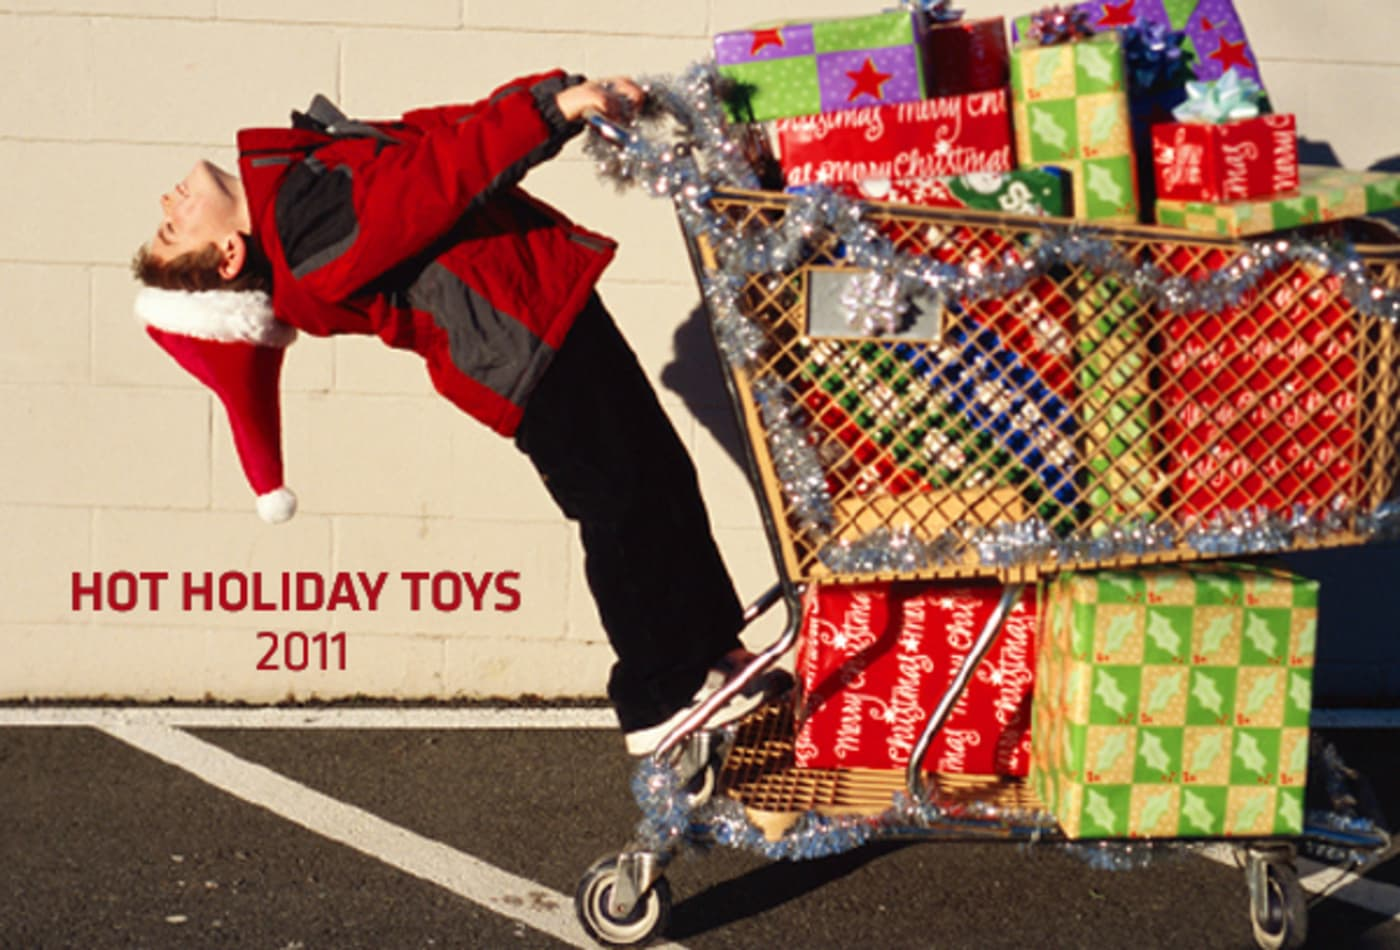 CNBC-hot-holiday-toys-2011-cover.jpg